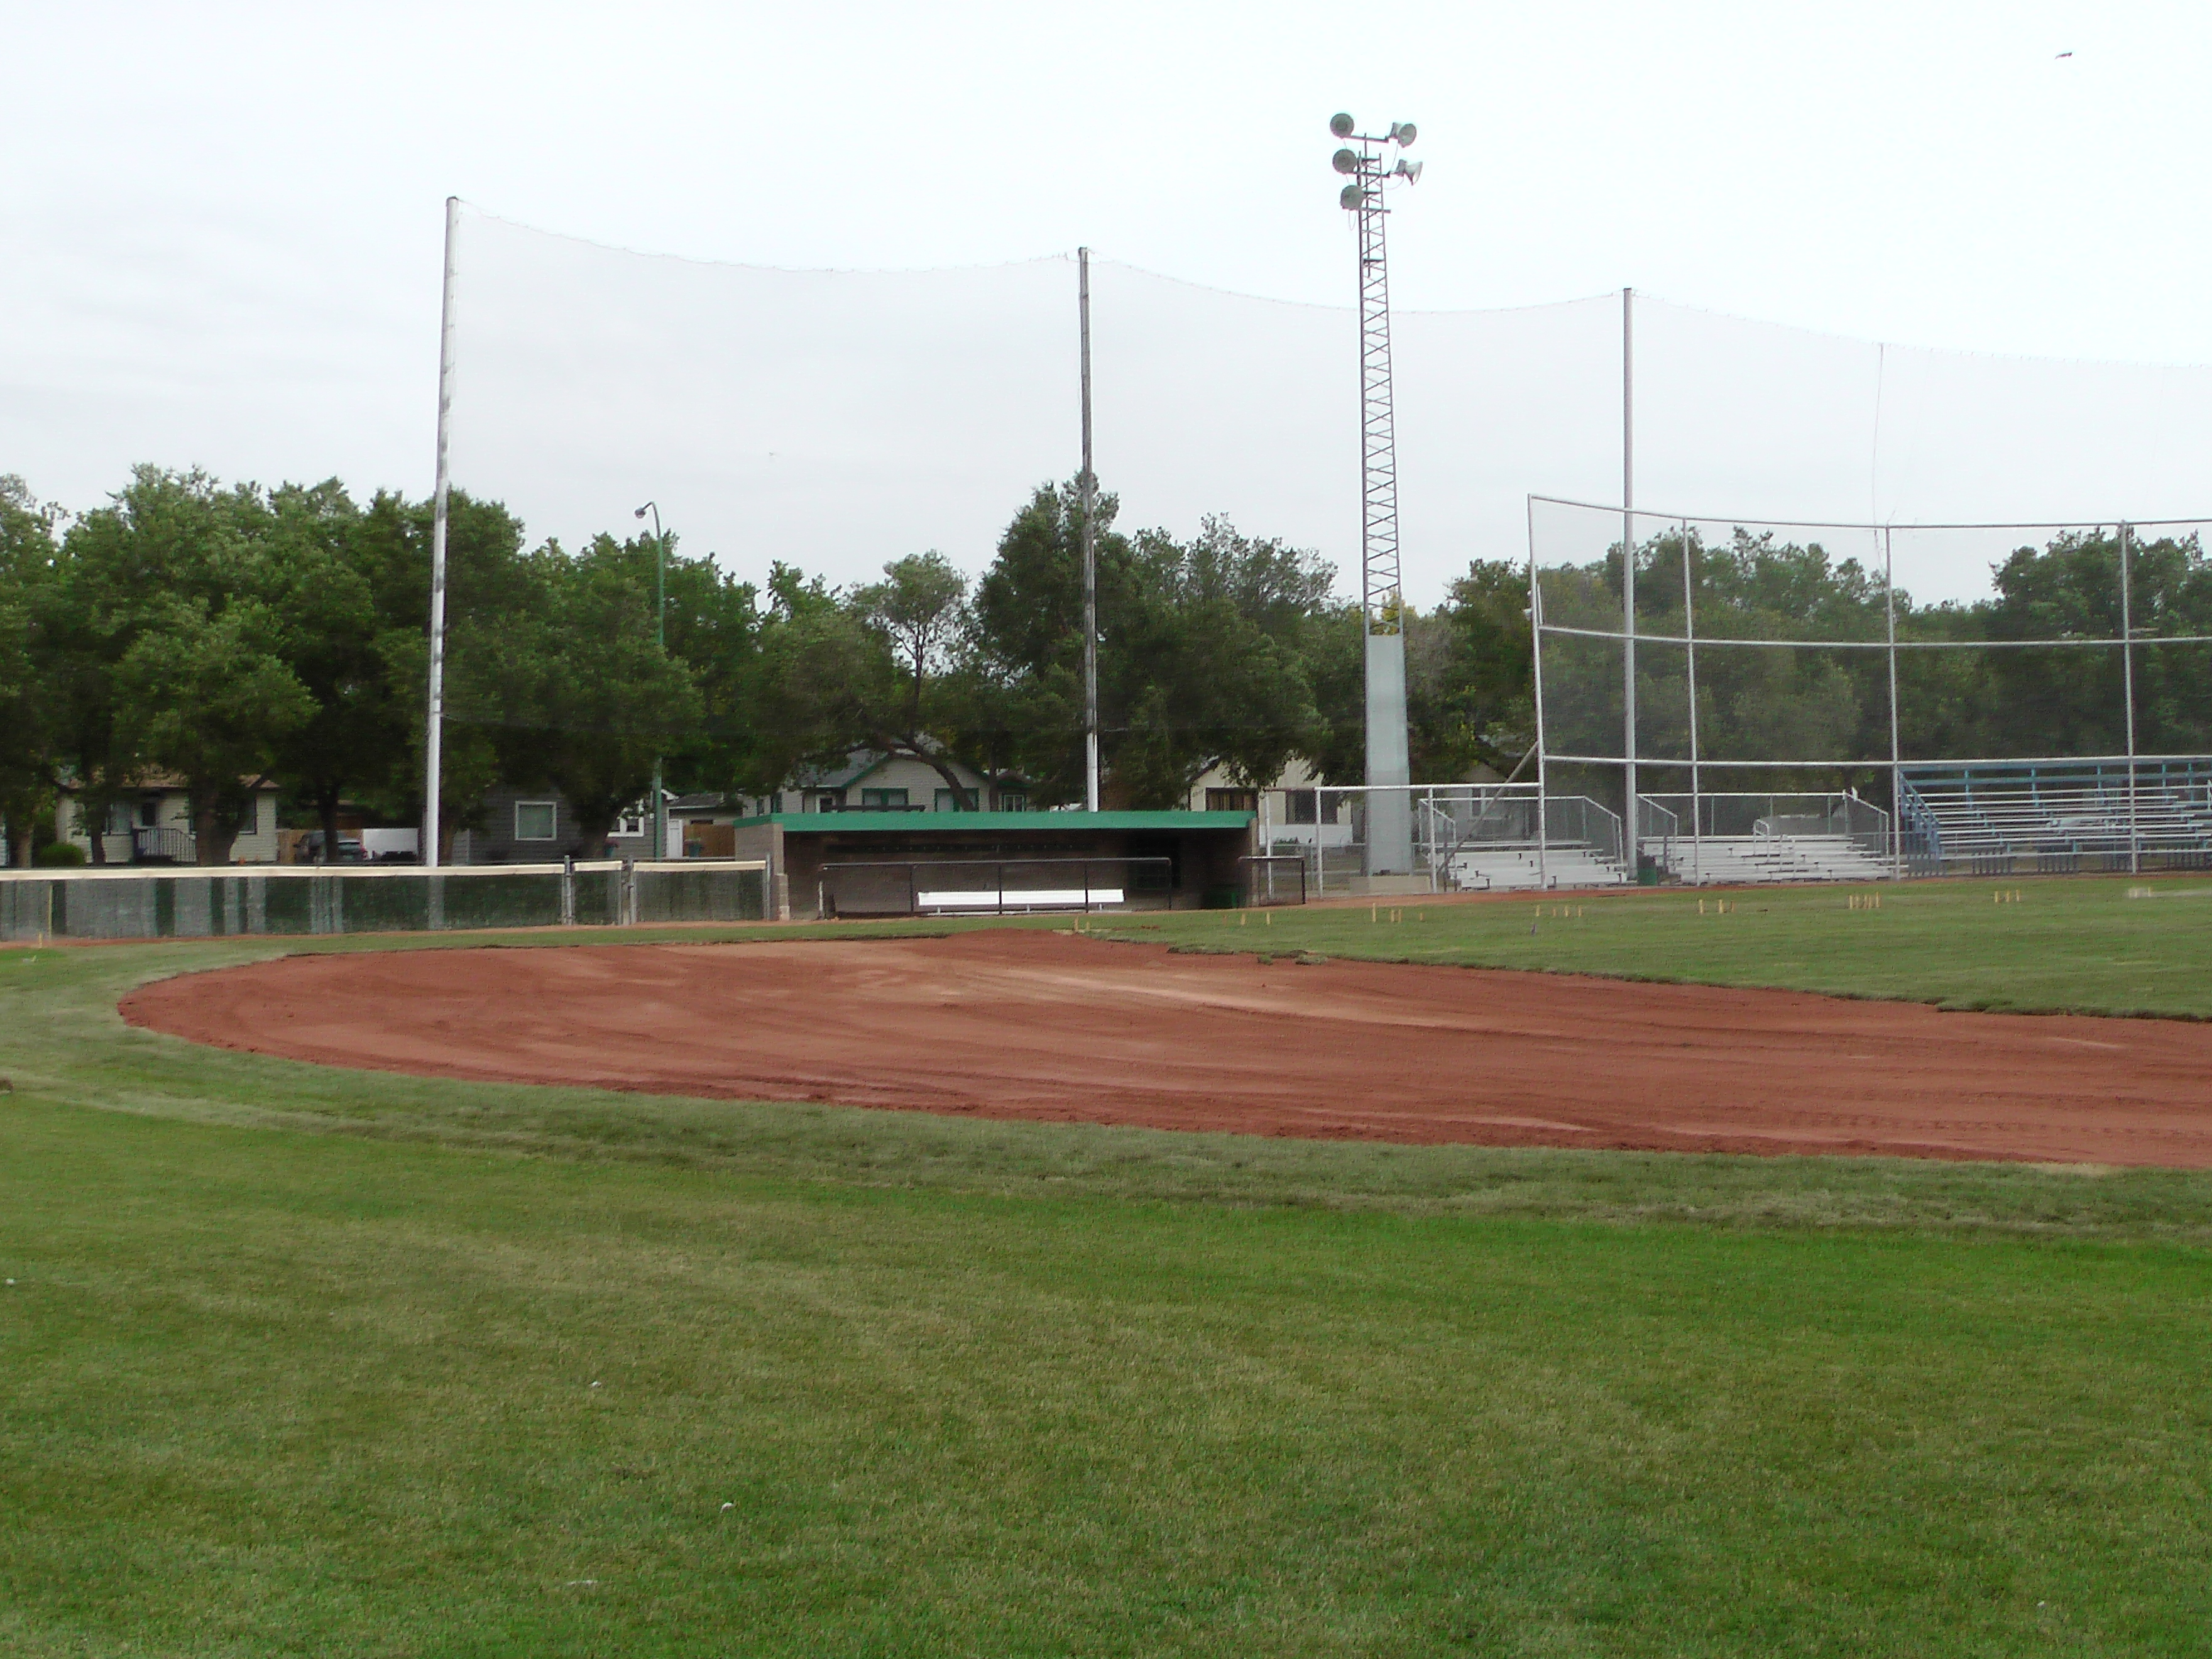 Sept 7 & 8 2018, Optimist Park Field Renovations, sod down being watered - Image 9